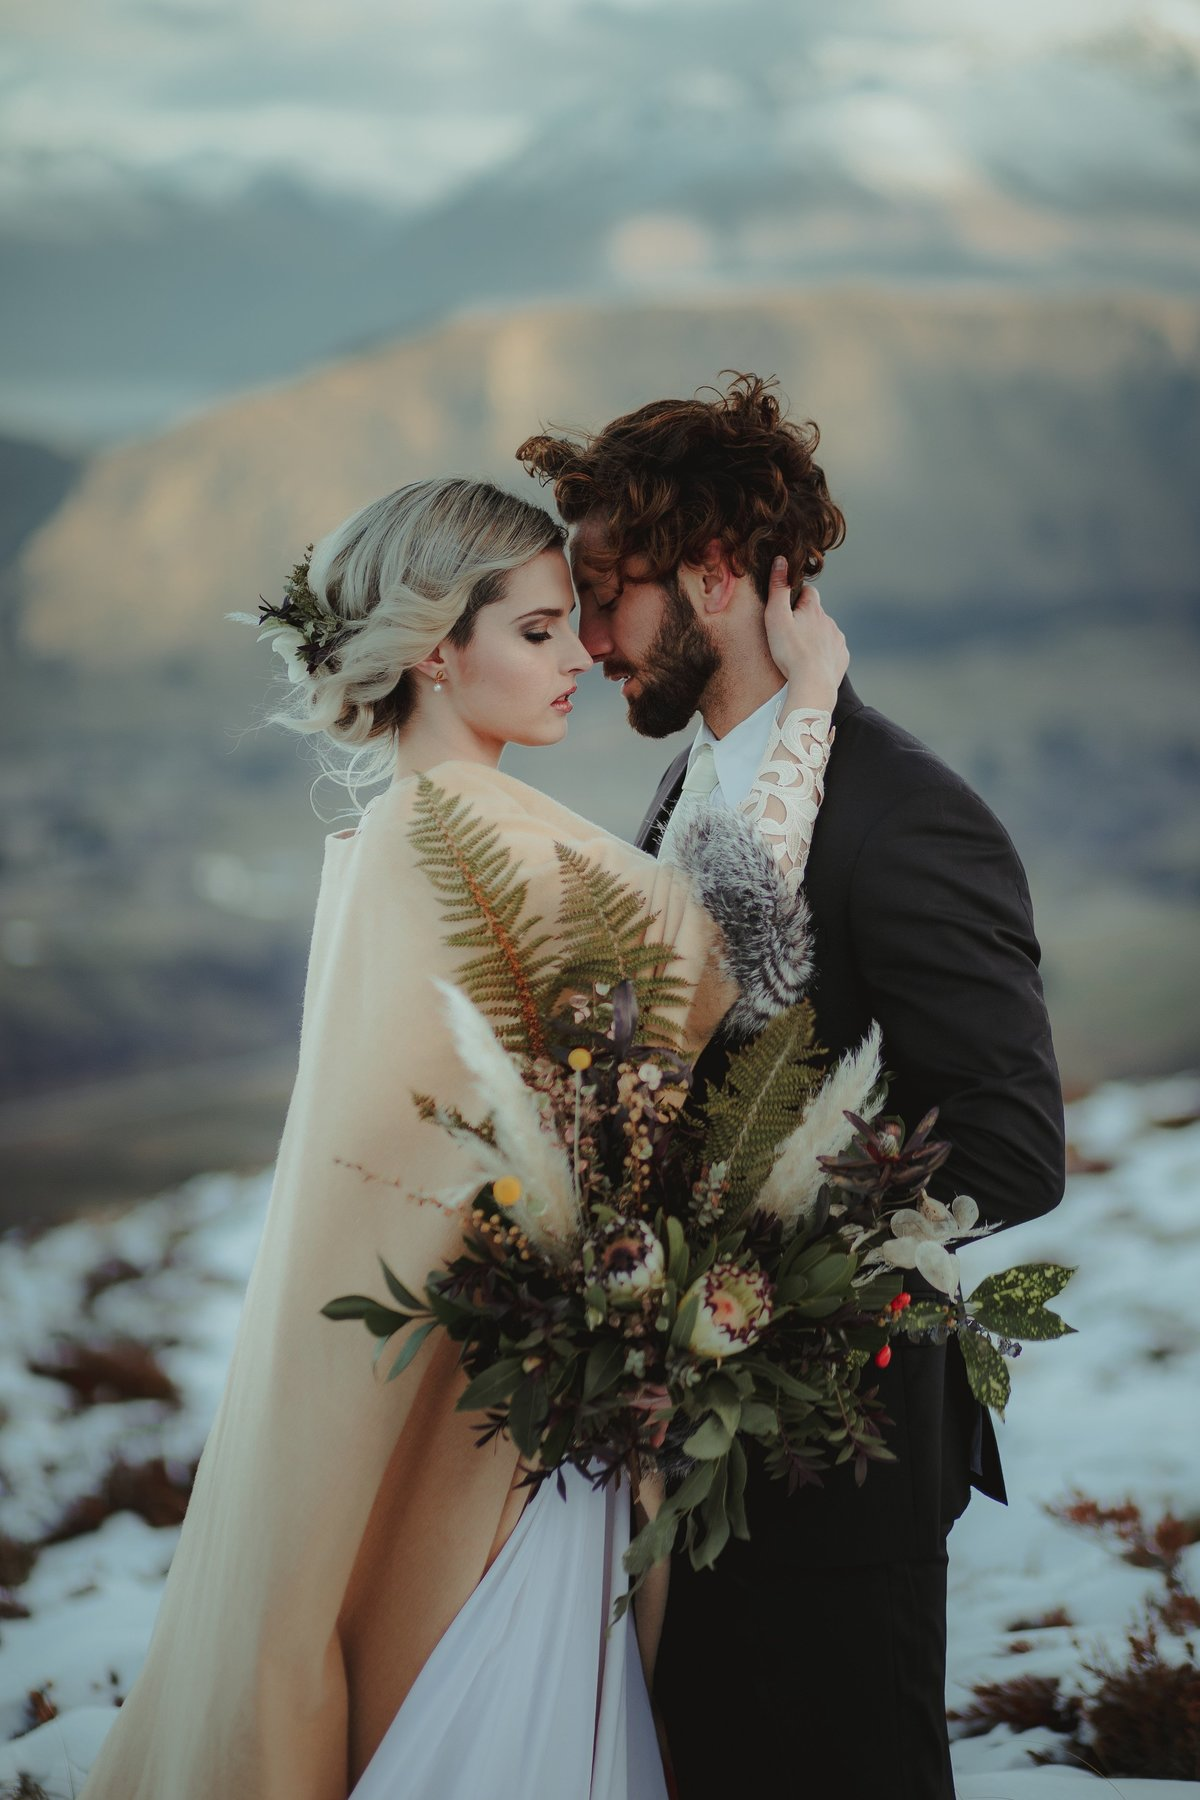 Bride and Groom holding each other close surrounded by snow